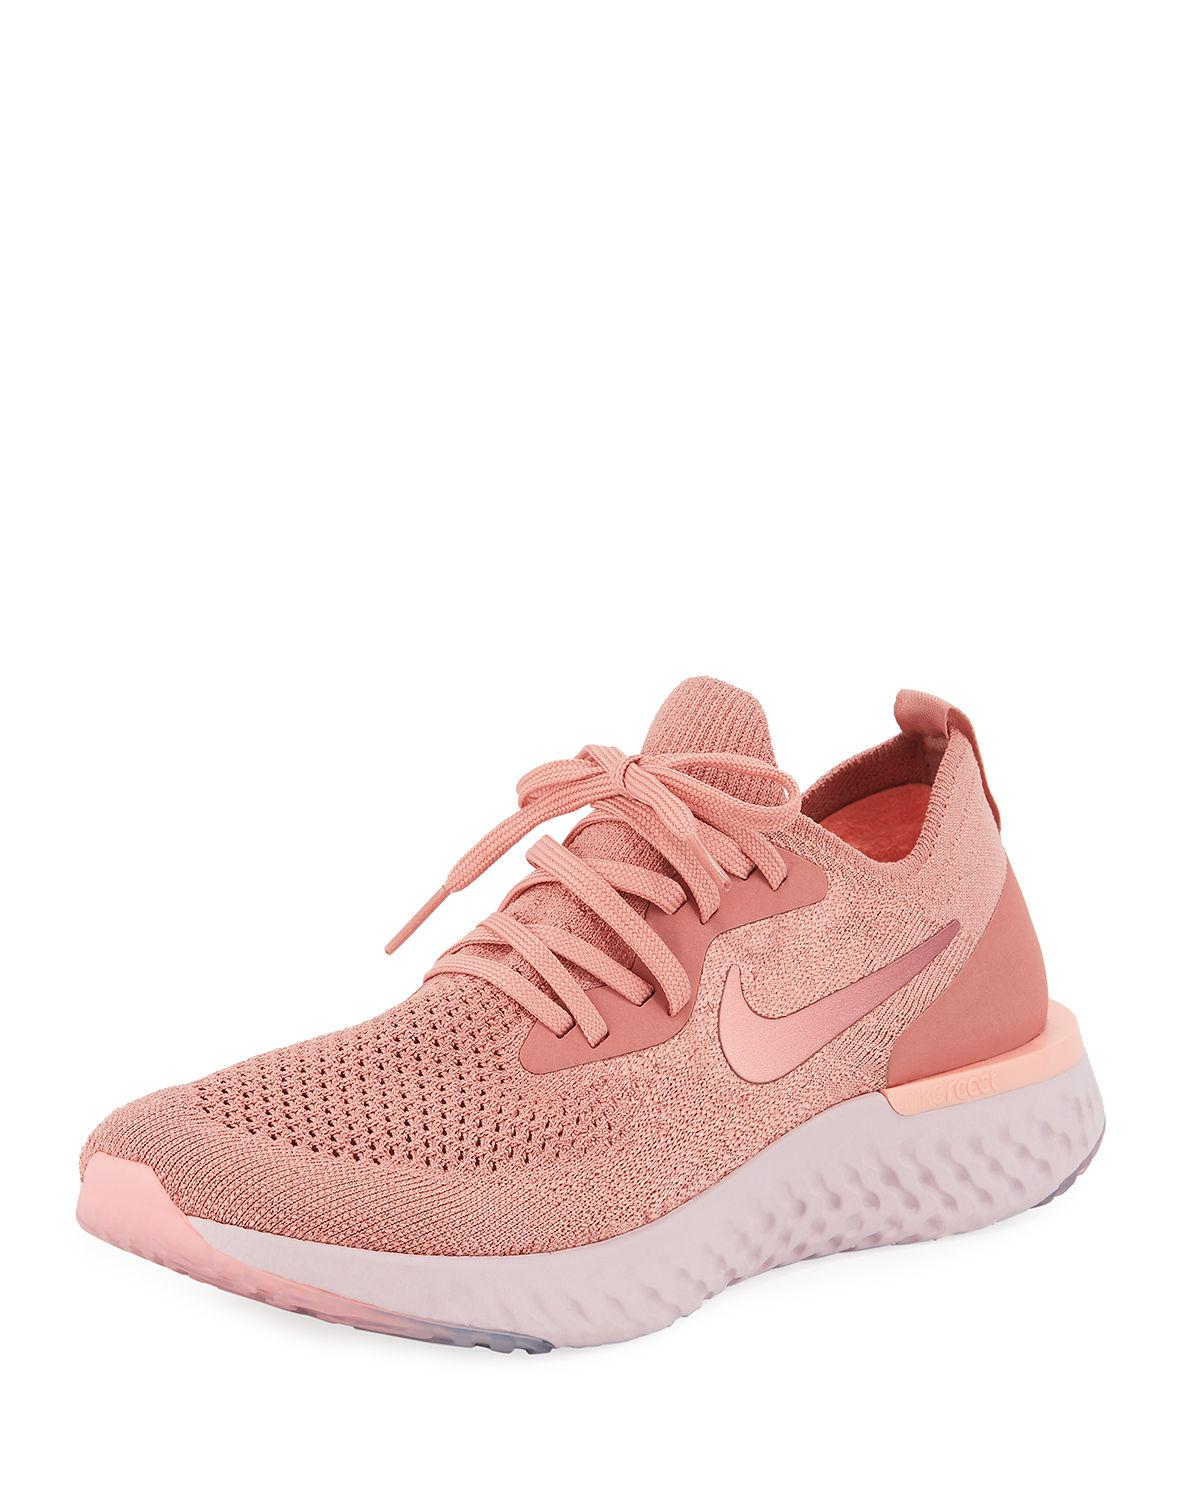 802b8870a91e uk nike. pink epic react flyknit womens running sneakers 52a14 7caca